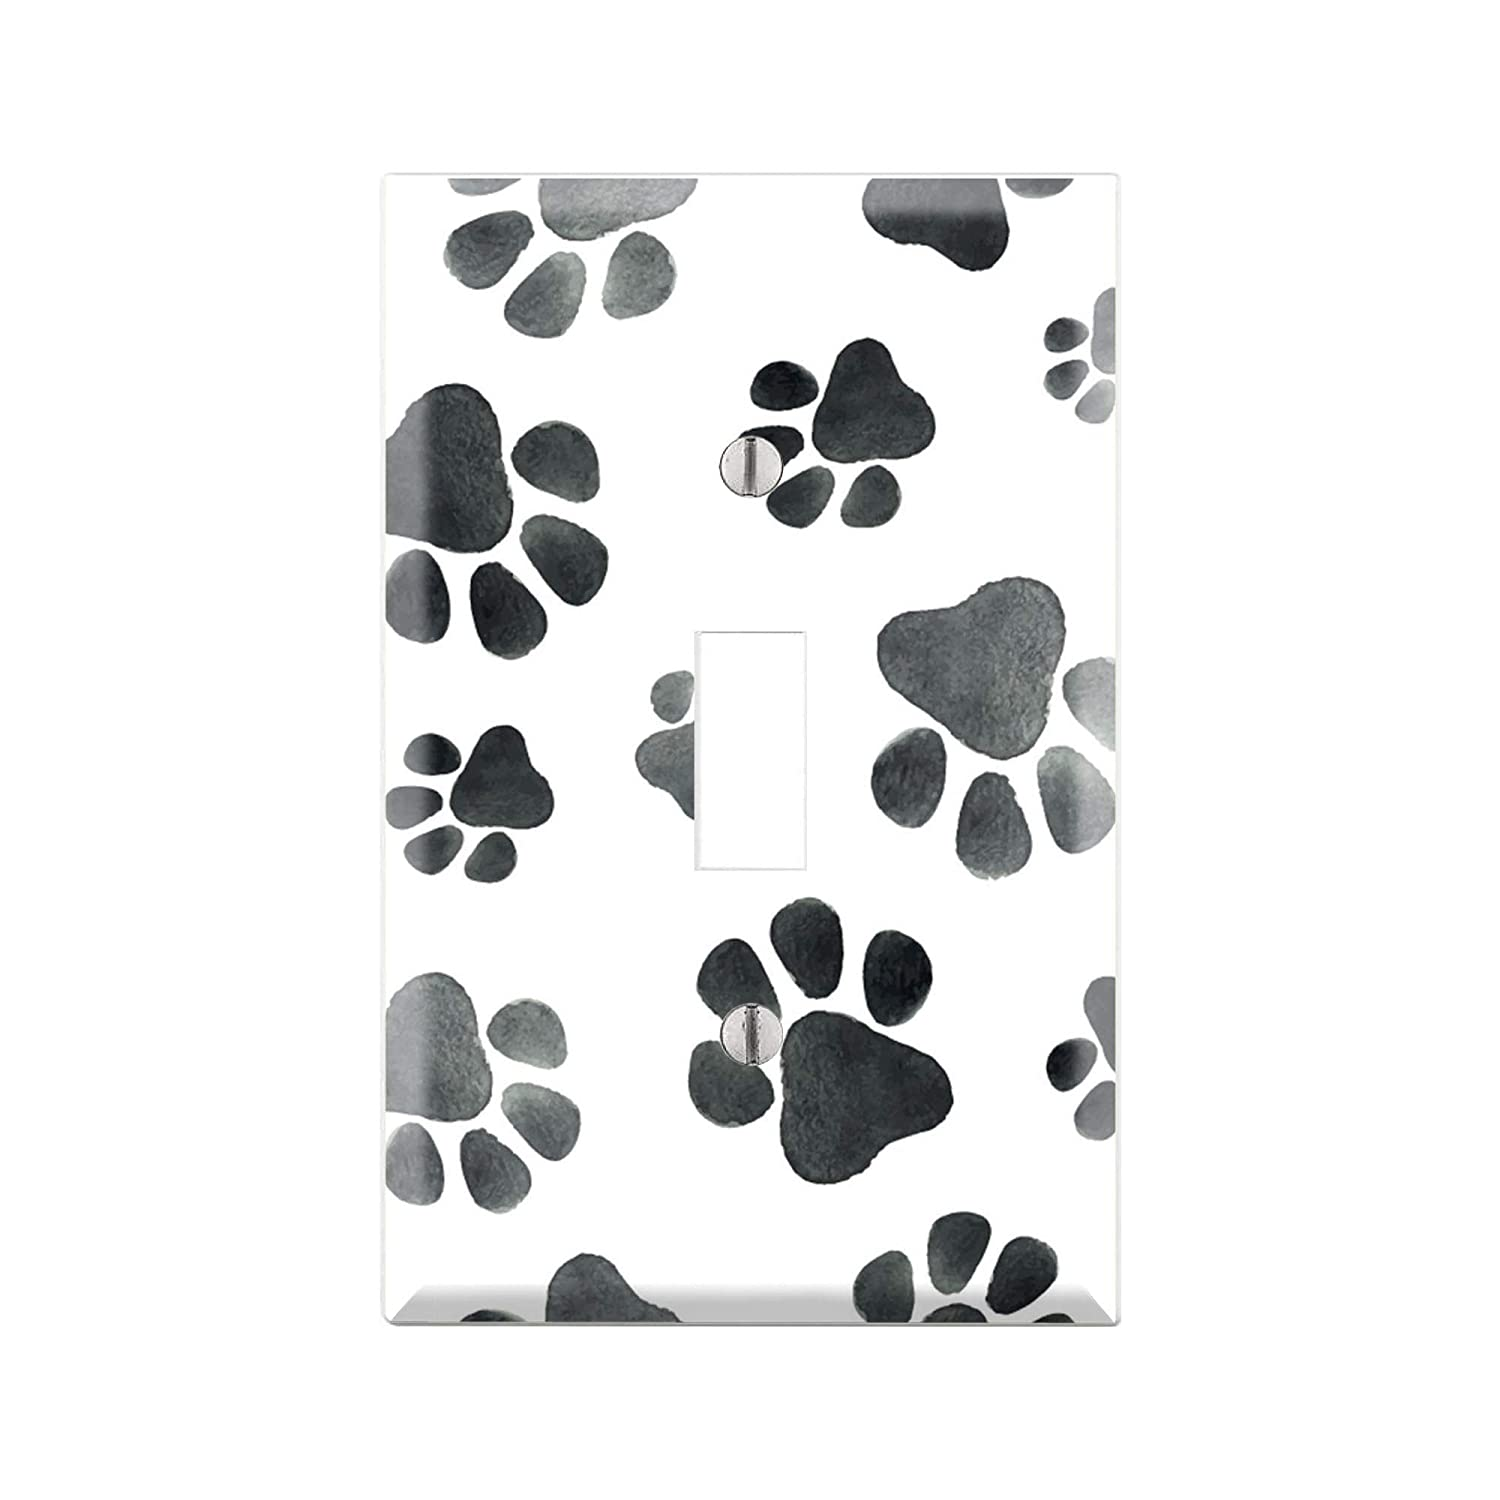 Amazon.com: DOG PAWS Light Switch Cover Wall Plate, DOG Graphics Wallplate,  Outlet Cover, Single Toggle, Single Rocker, Outlet Cover, Gift for DOG  Lover, DOG room decor, DOGS Wall Plate Cover TF111: Handmade